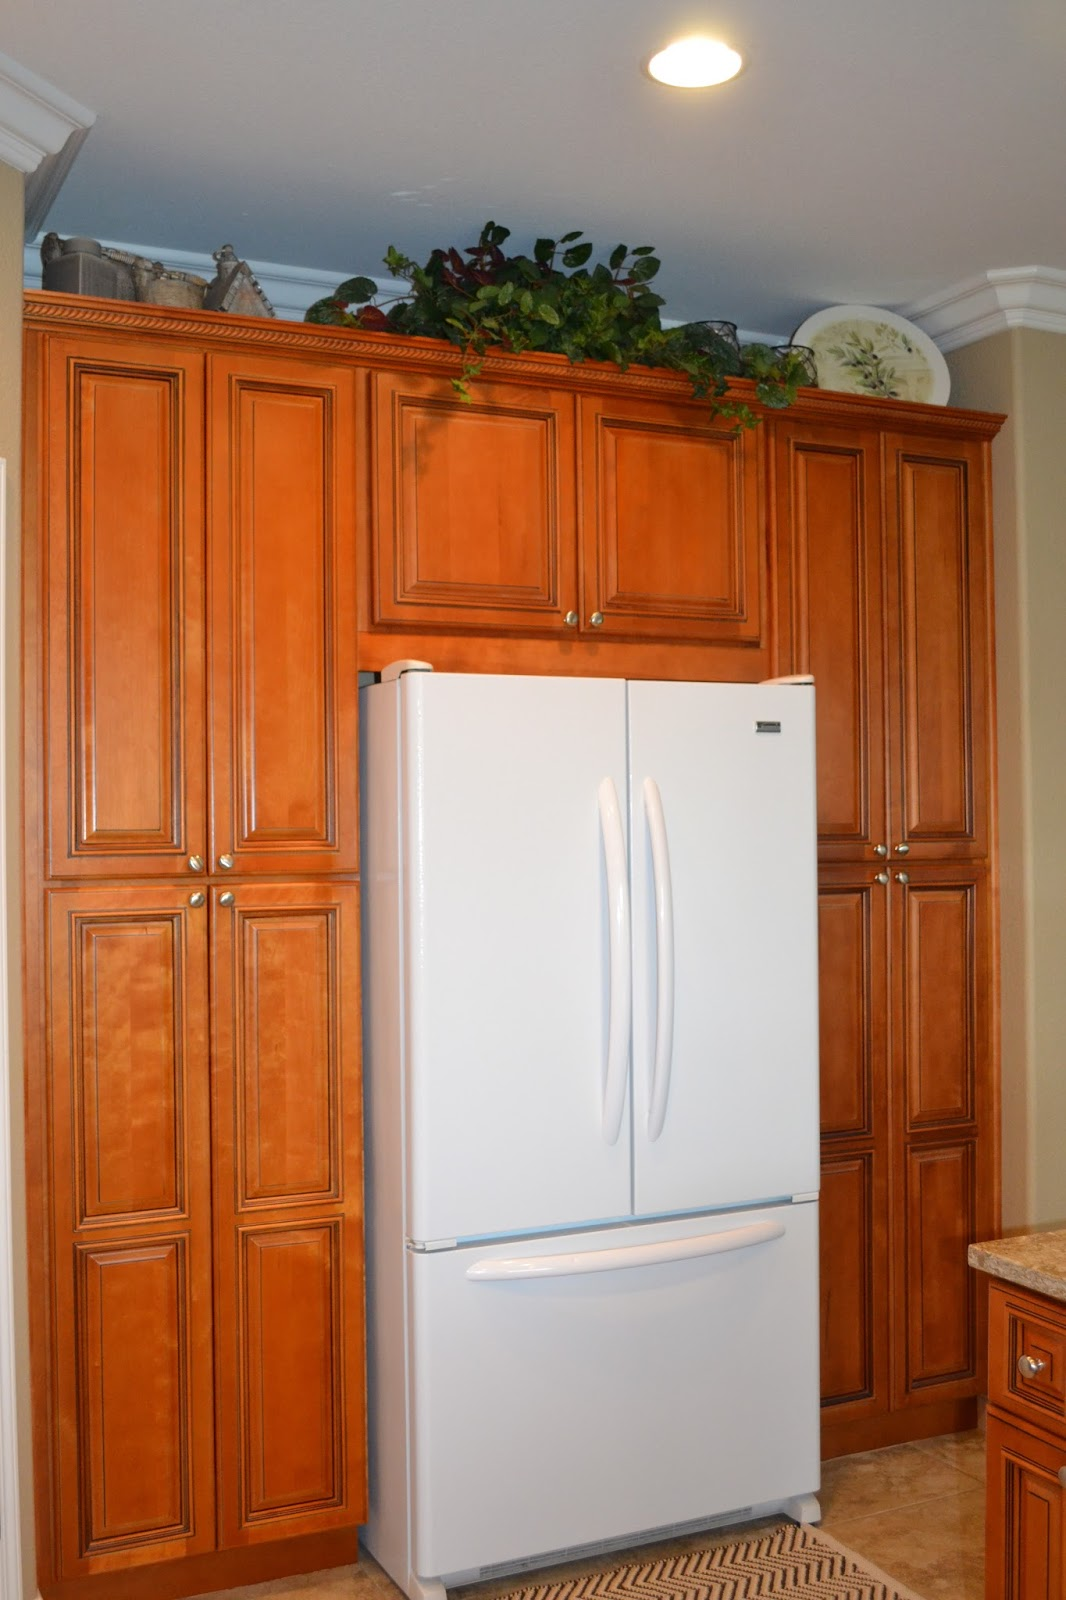 Kitchen Cabinets Around Refrigerator Particularly Practically Pretty The Kitchen Remodel